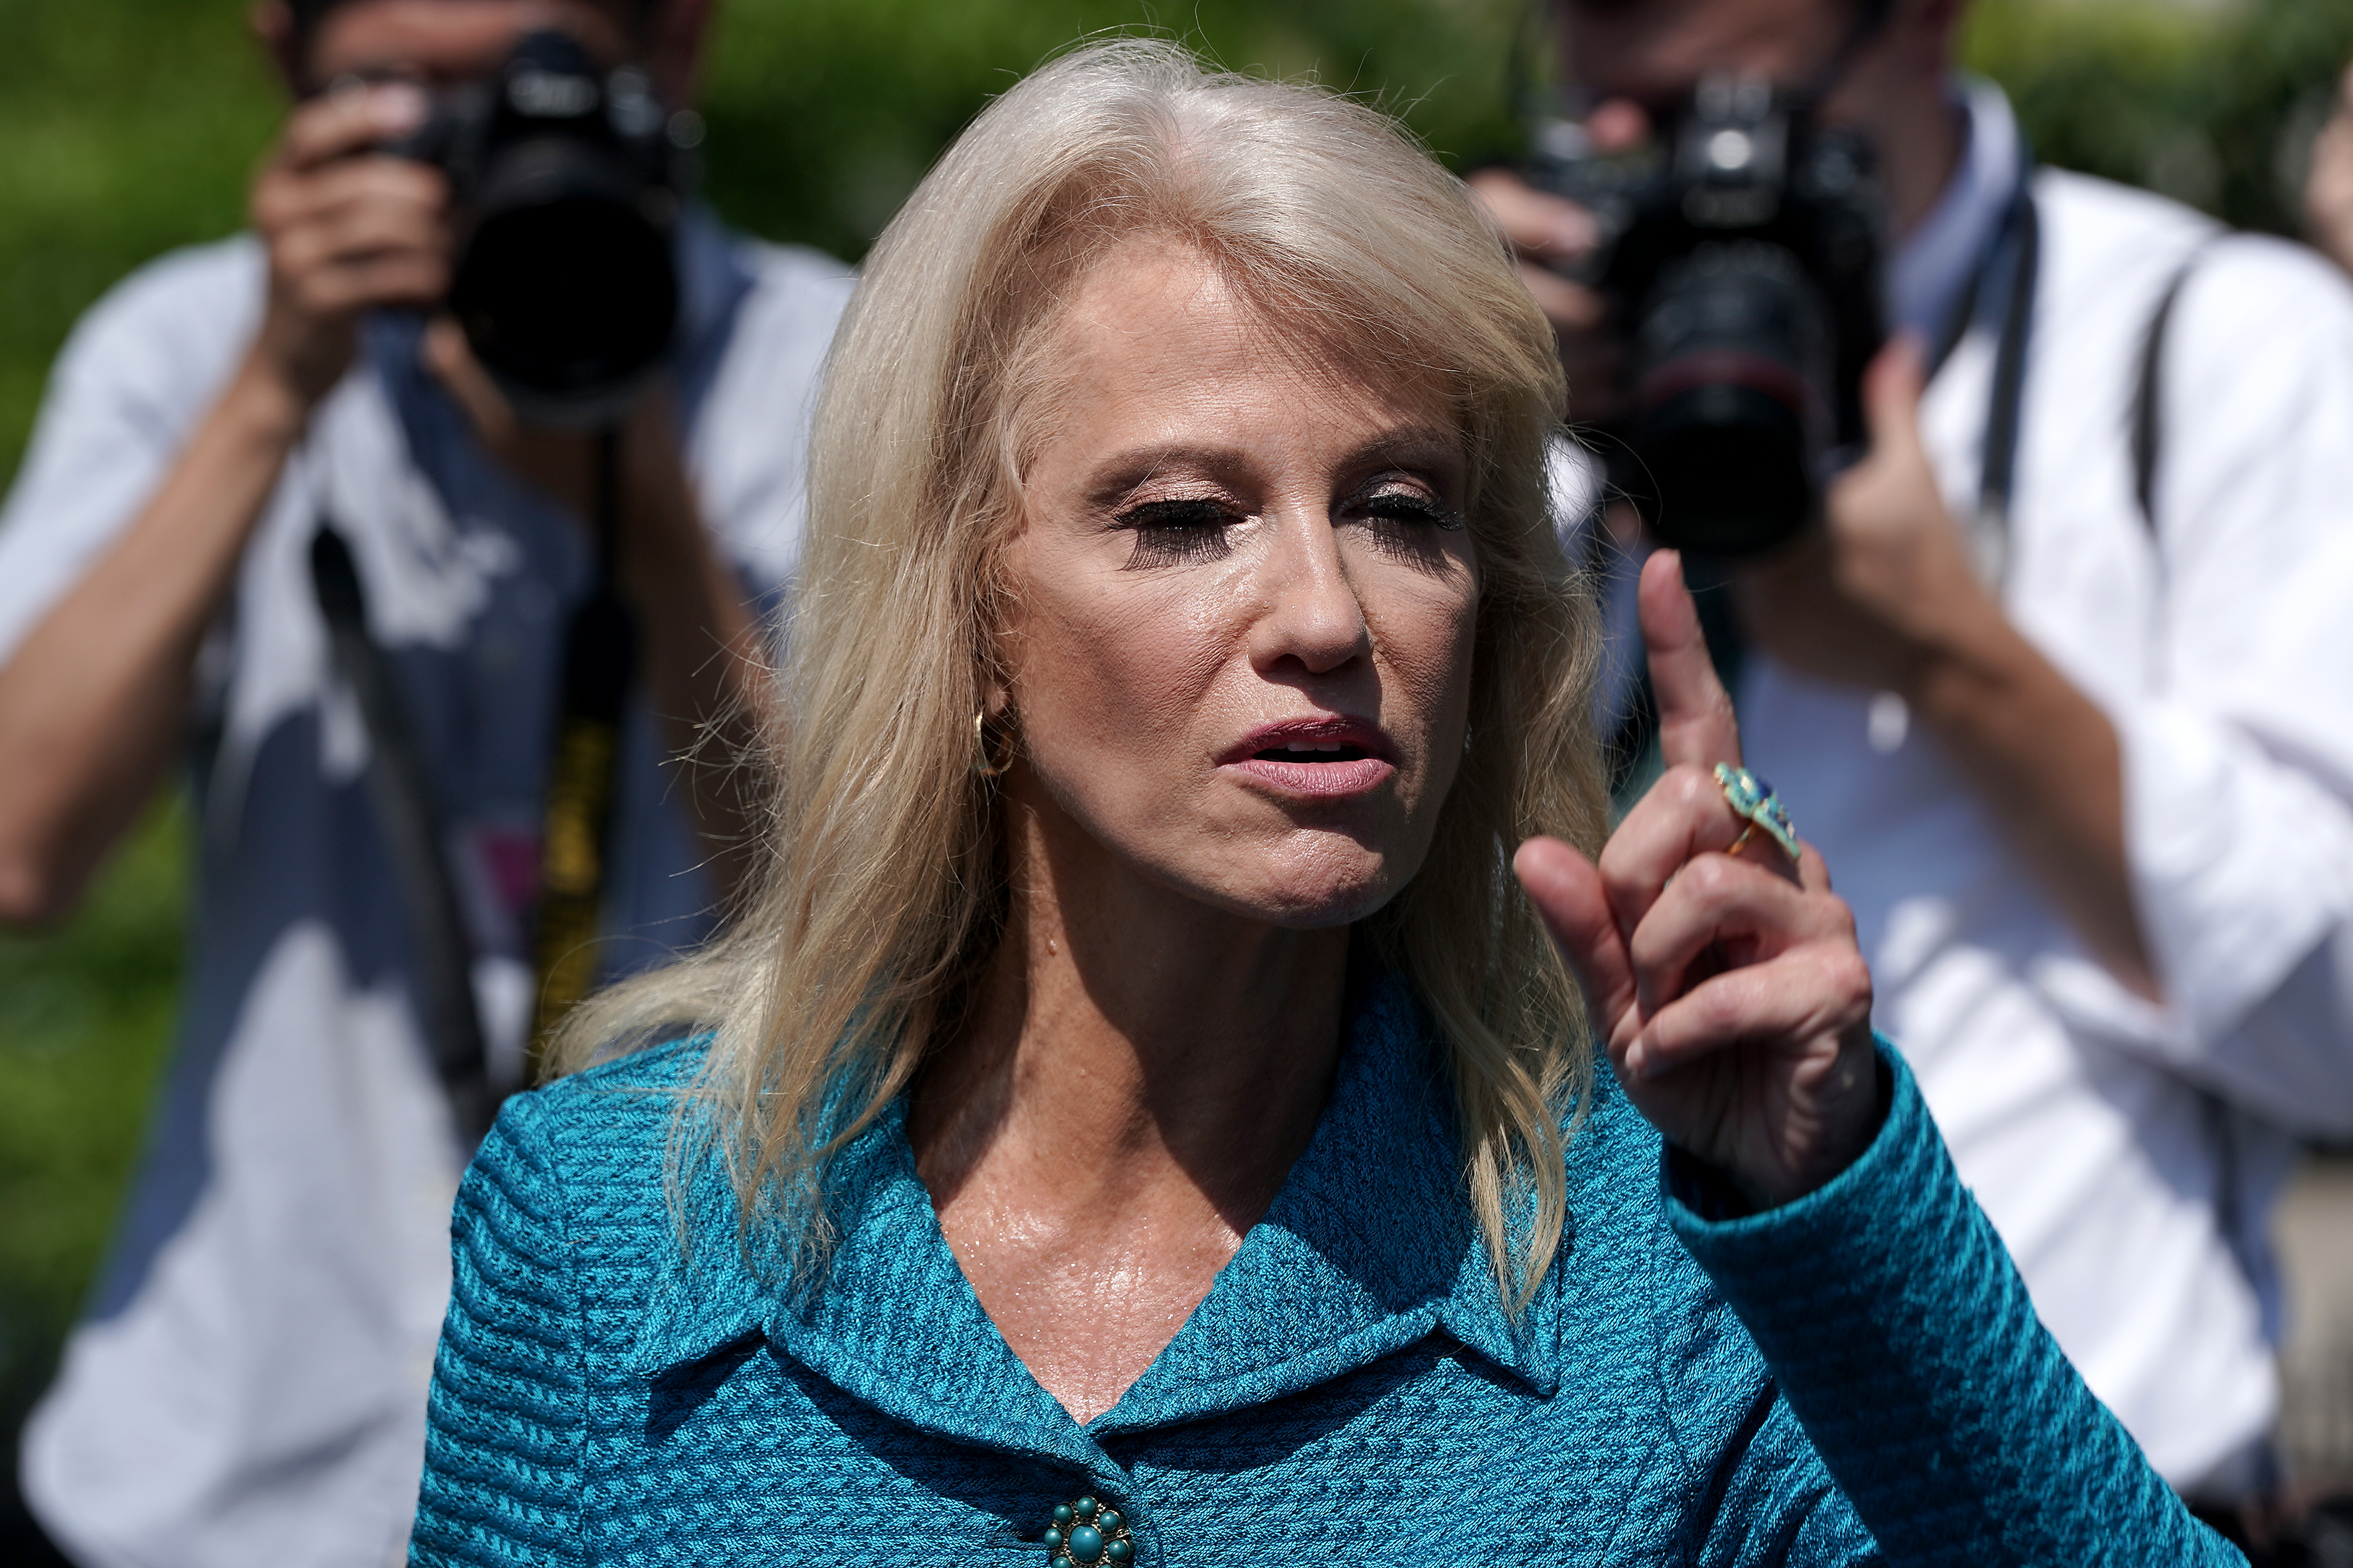 Mike Pence to visit Cumberland County with Kellyanne Conway and Betsy DeVos